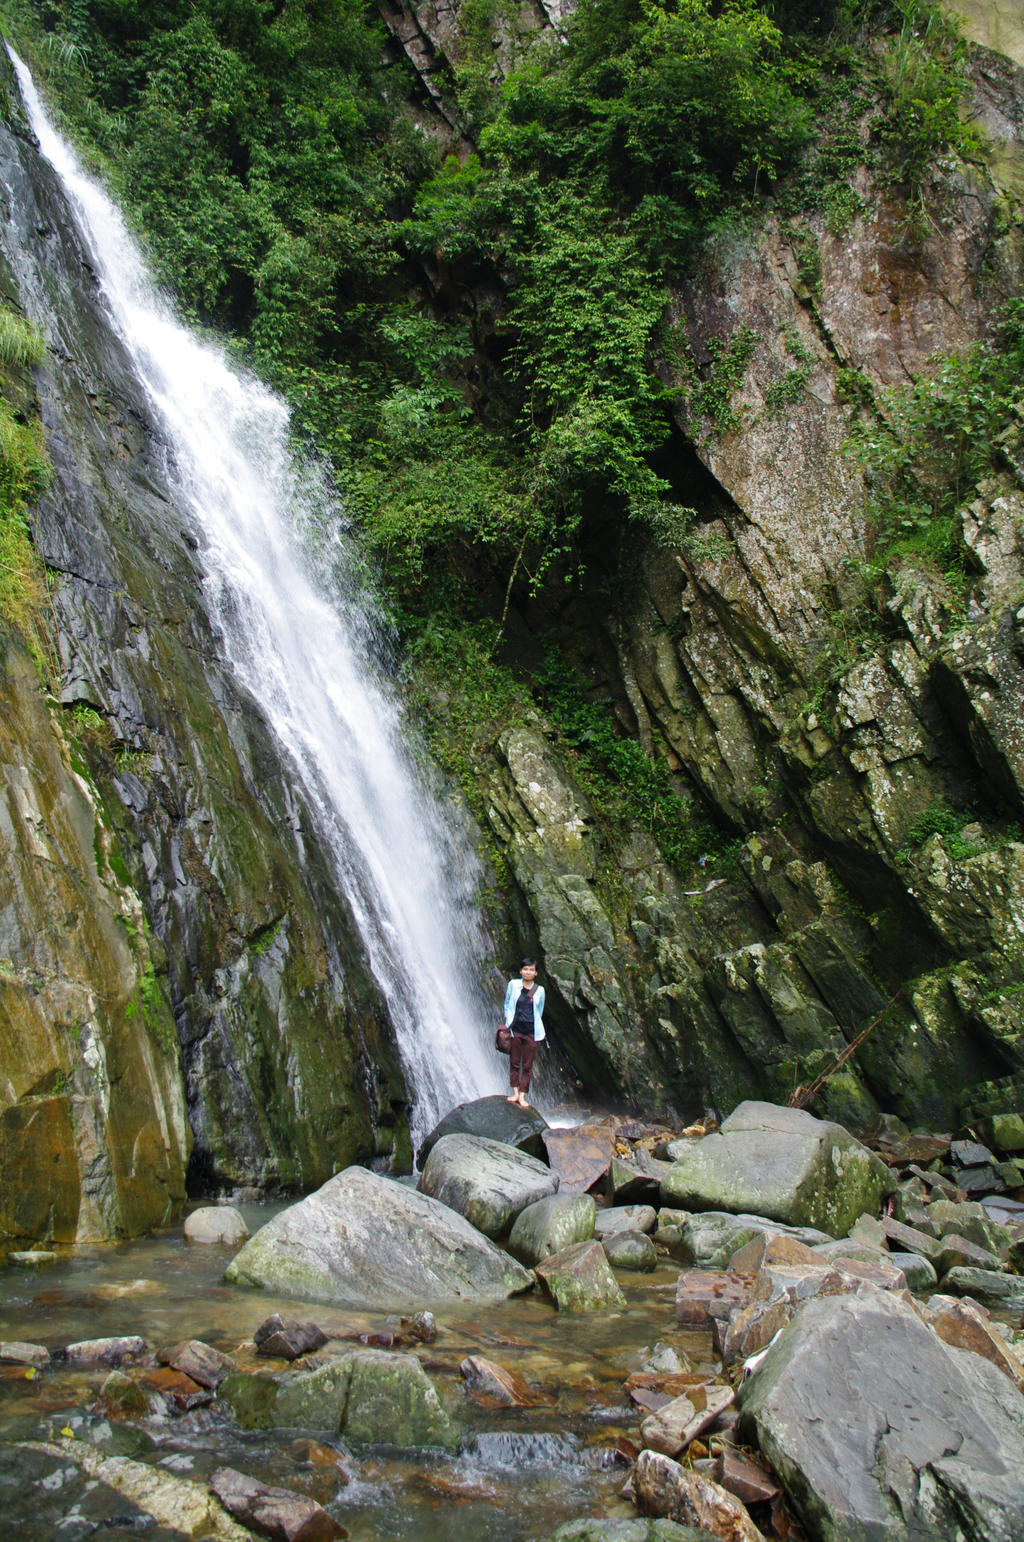 Tam Dao (Vinh Phuc) Vietnam  city pictures gallery : Bac waterfall. Tam Dao. Vinh Phuc. Vietnam by Chimom198 on DeviantArt